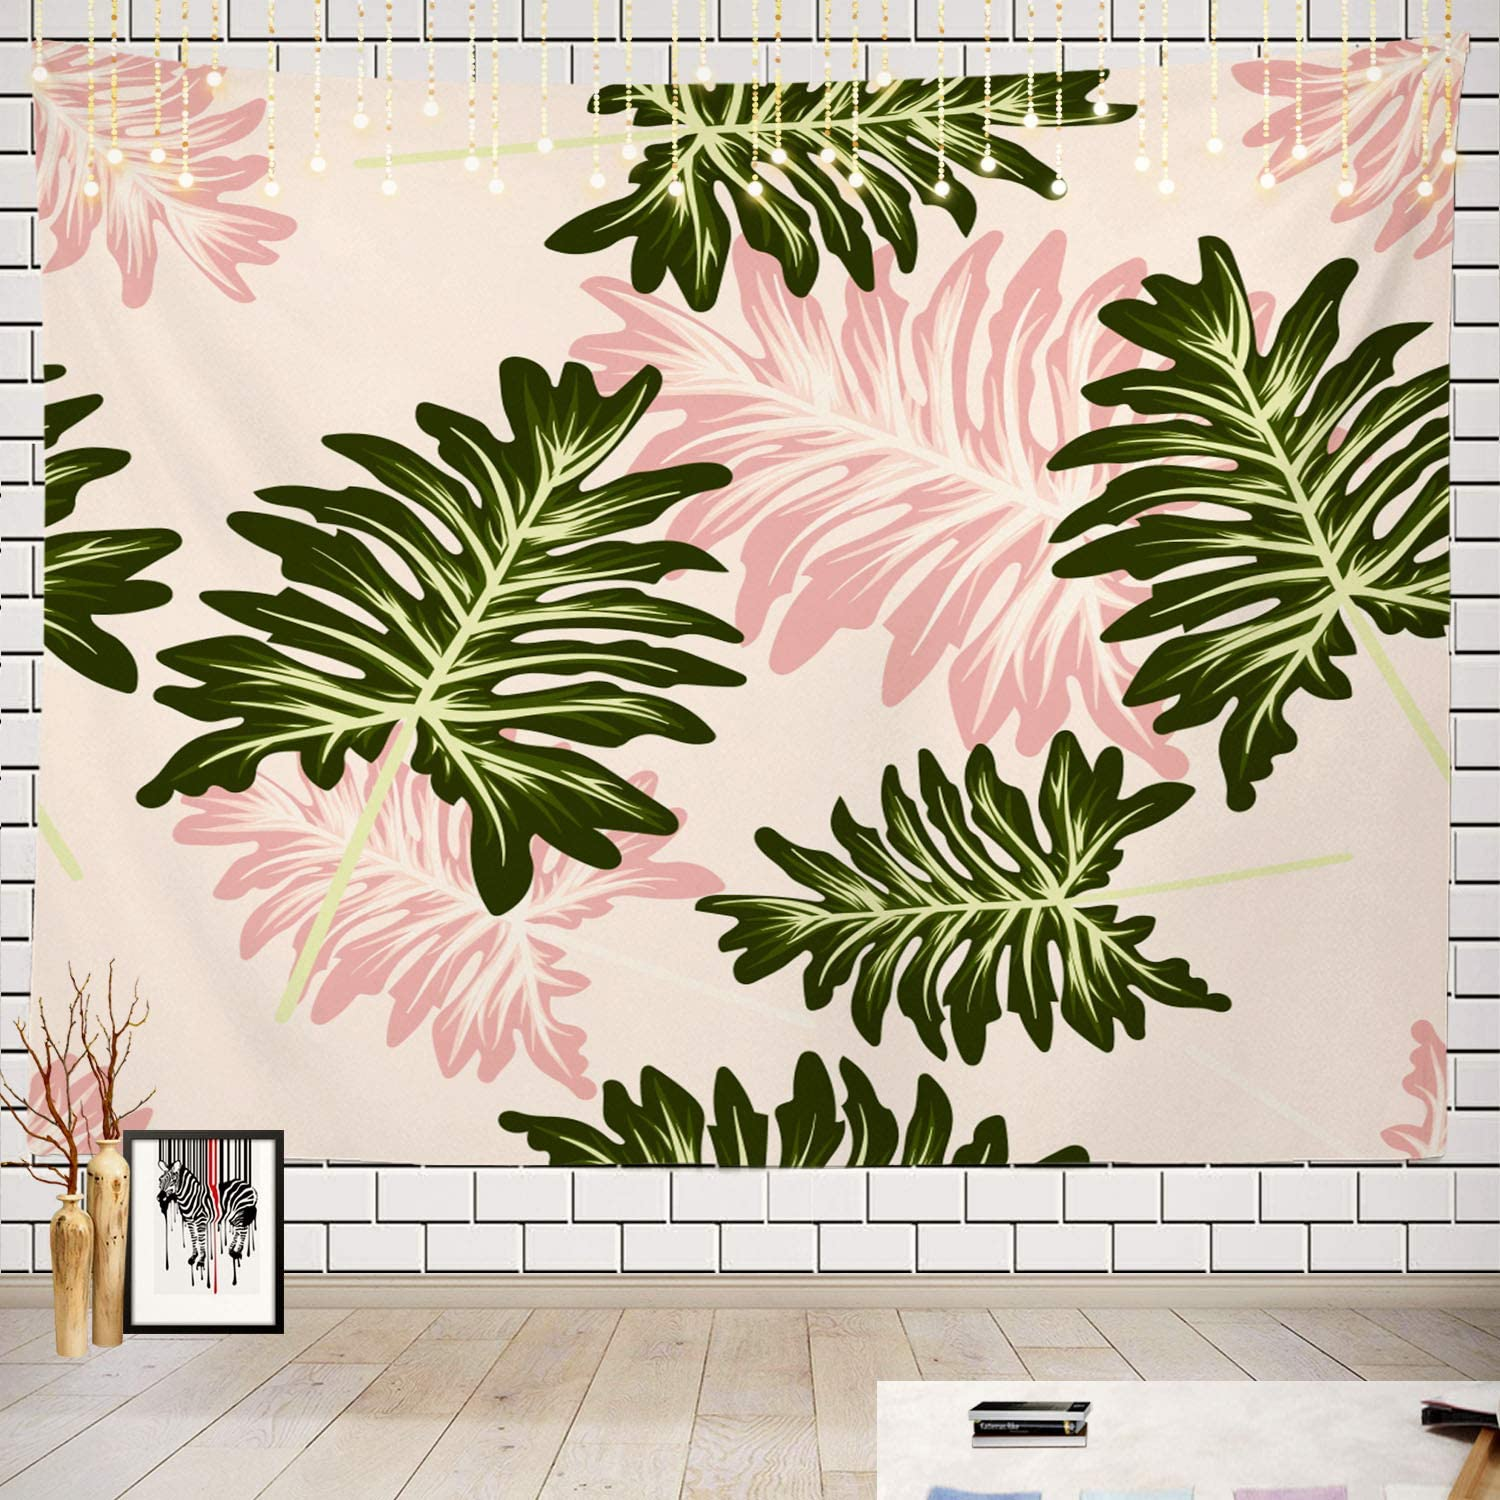 Batmerry Light Pink Tapestry, Colorful Abstract Exotic Beach Trendy Floral Tropical Leaves Picnic Mat Hippie Trippy Tapestry Wall Art Decor for Bedroom Living Room, 51.2 x 59.1 Inches, Pink Blue